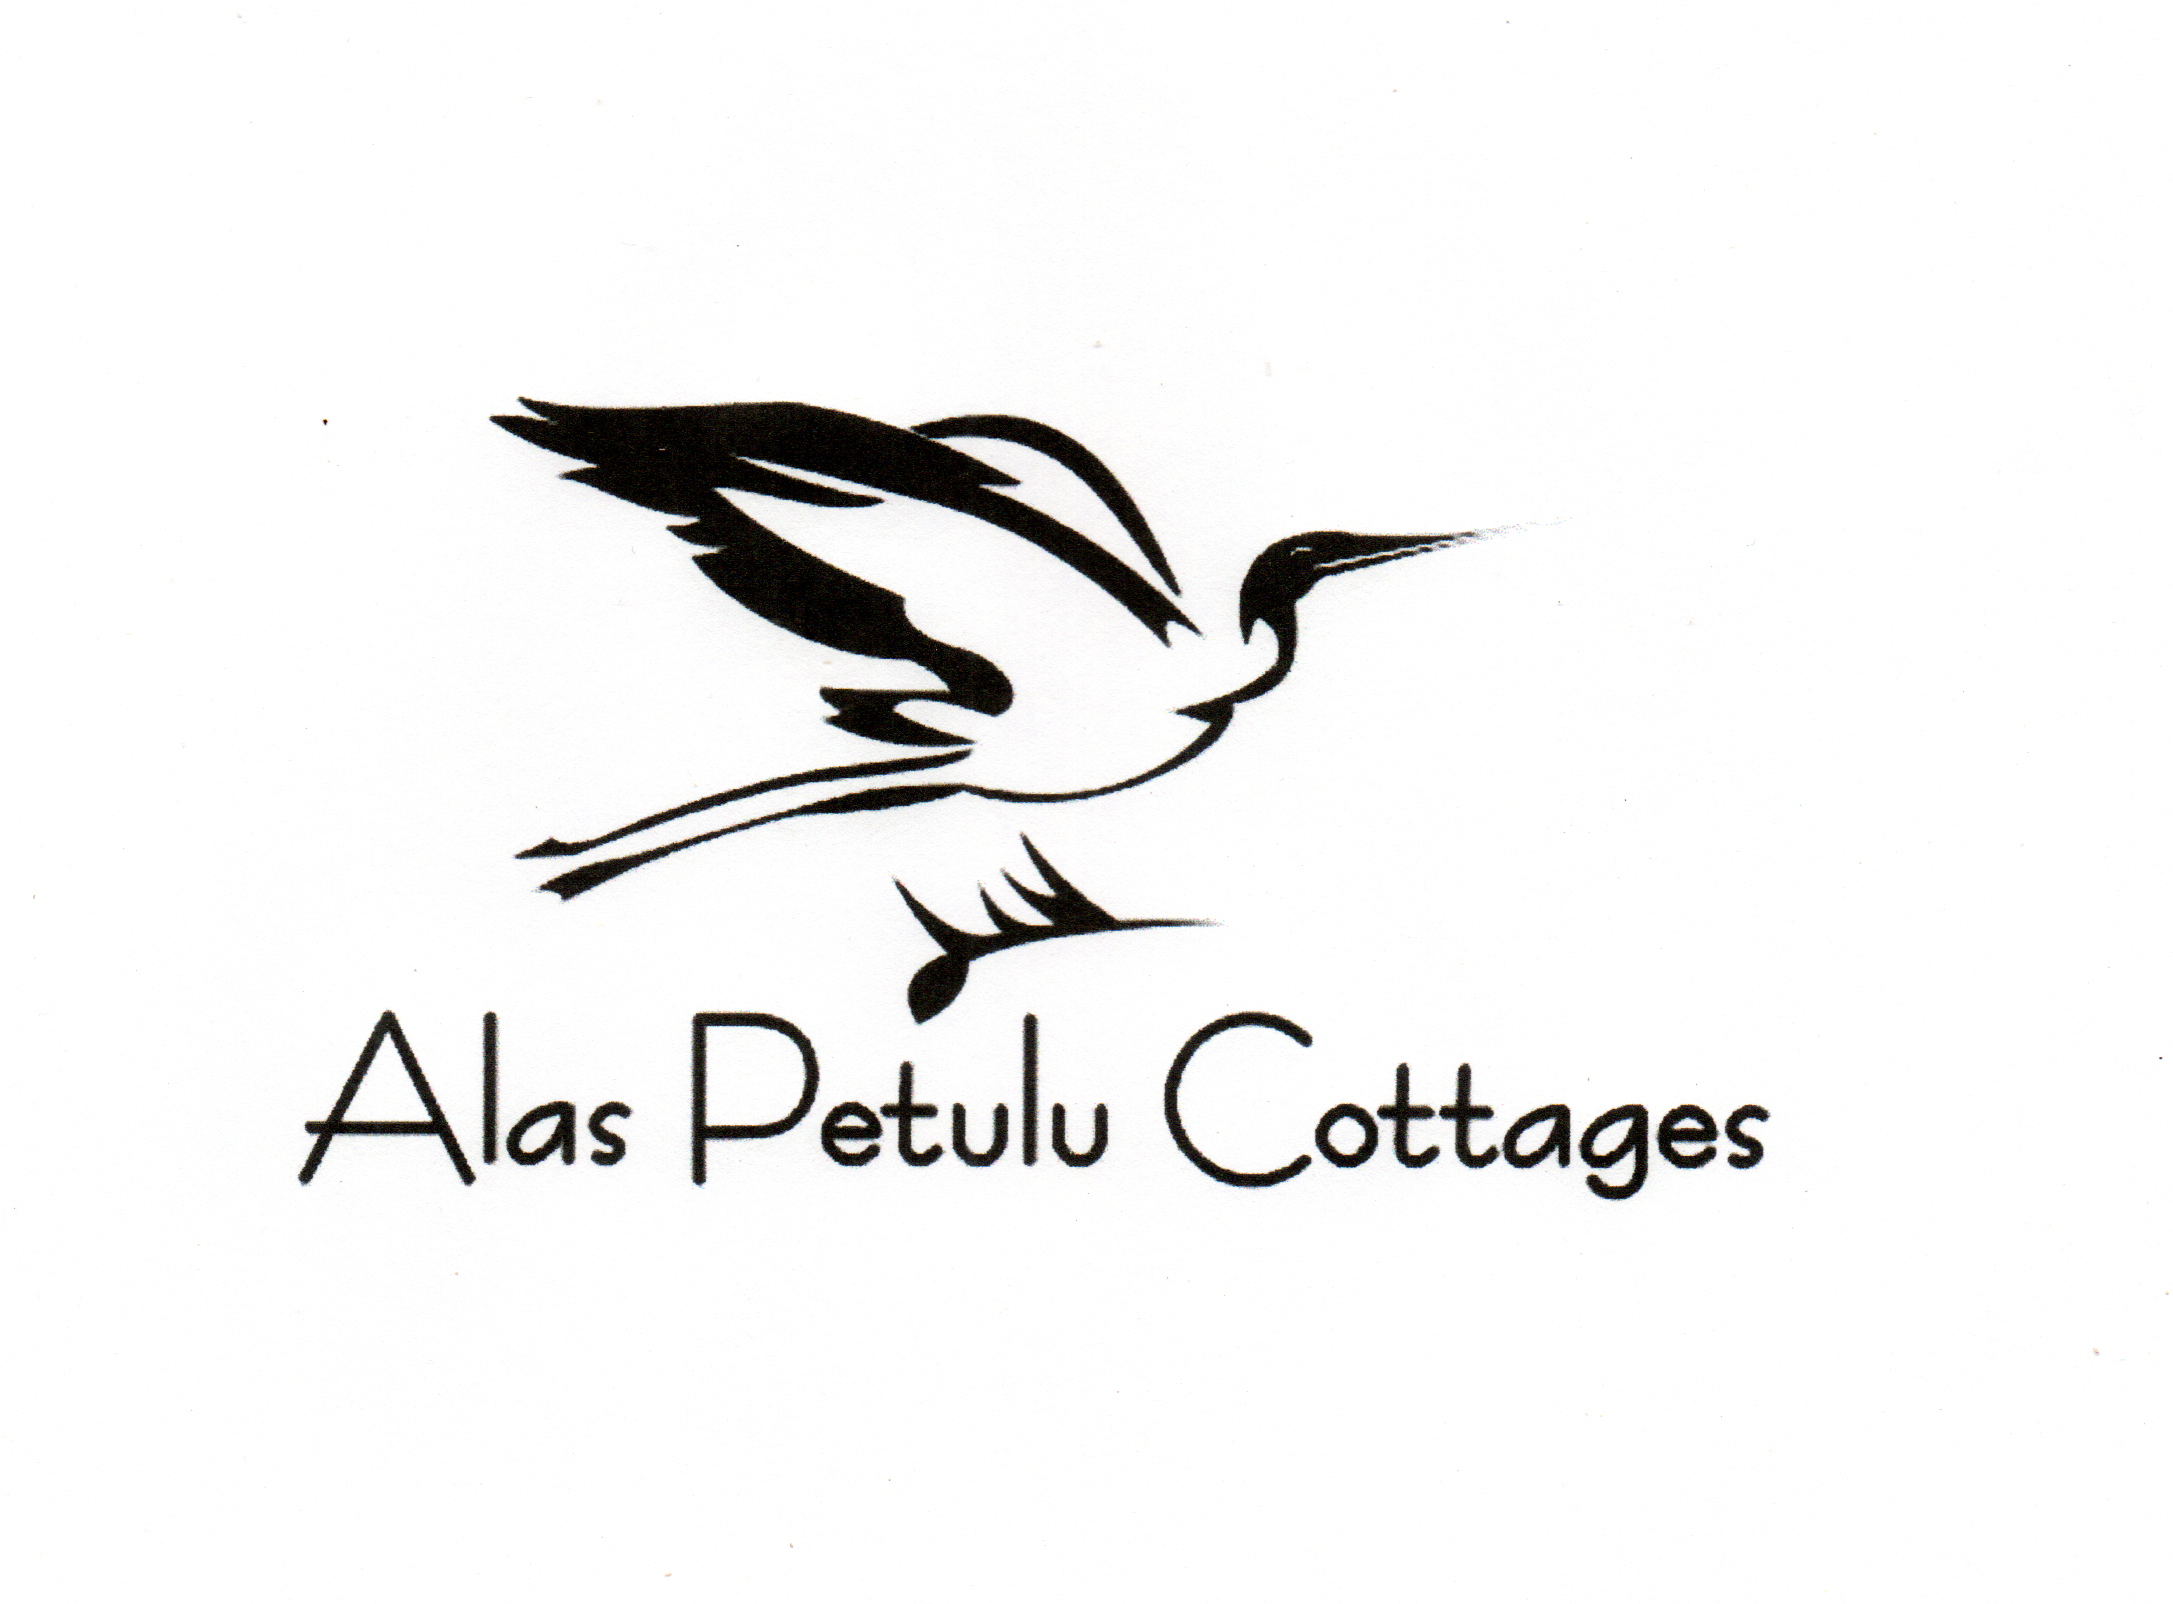 Alas Petulu Cottages